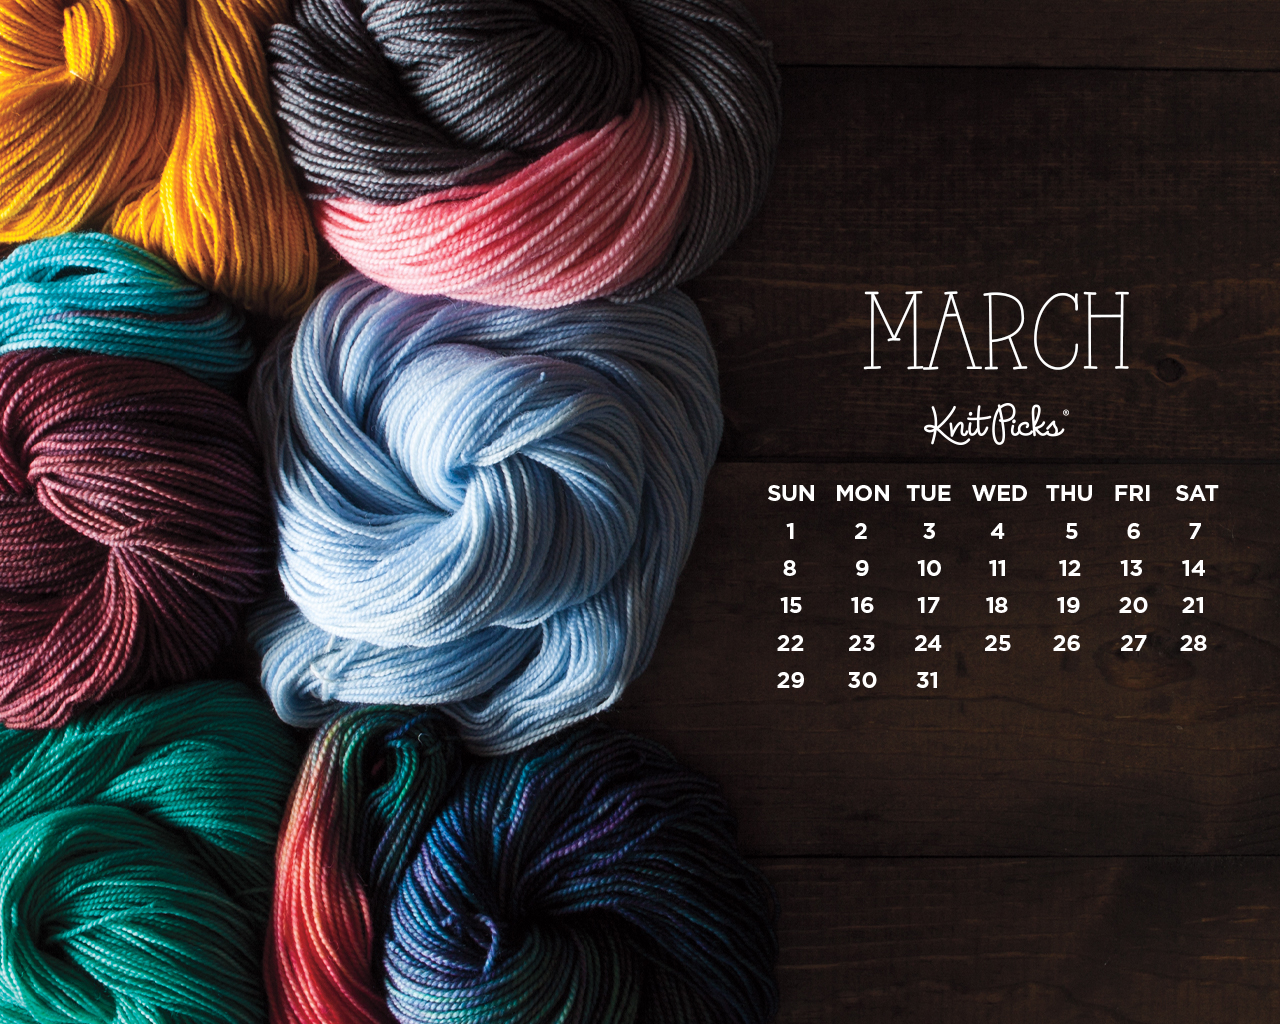 March 2015 wallpaper calendar